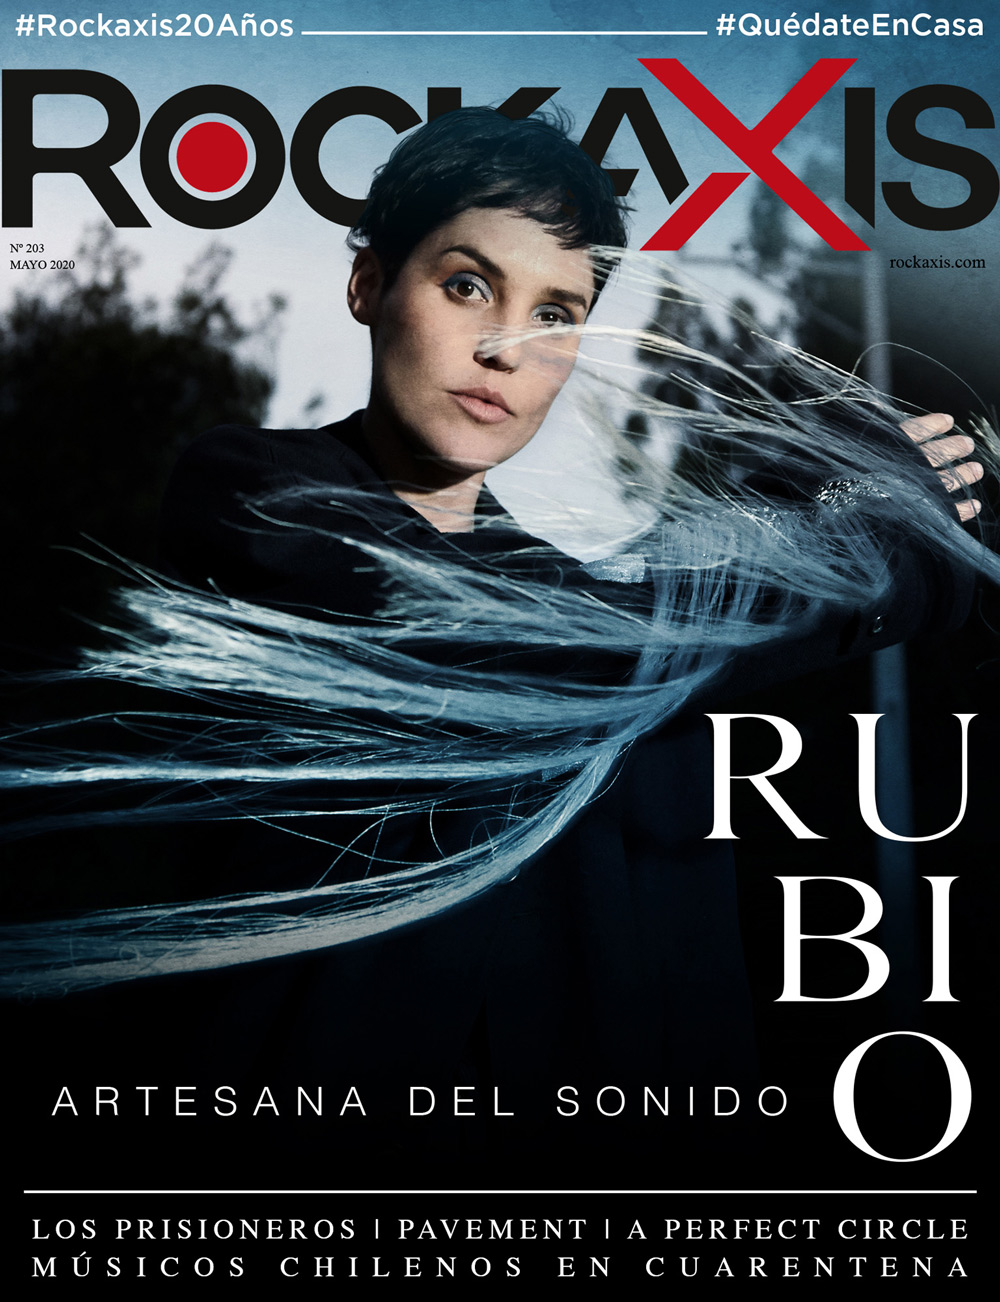 Revista #Rockaxis203: Rubio, Los Prisioneros, Pavement, A Perfect Circle y más